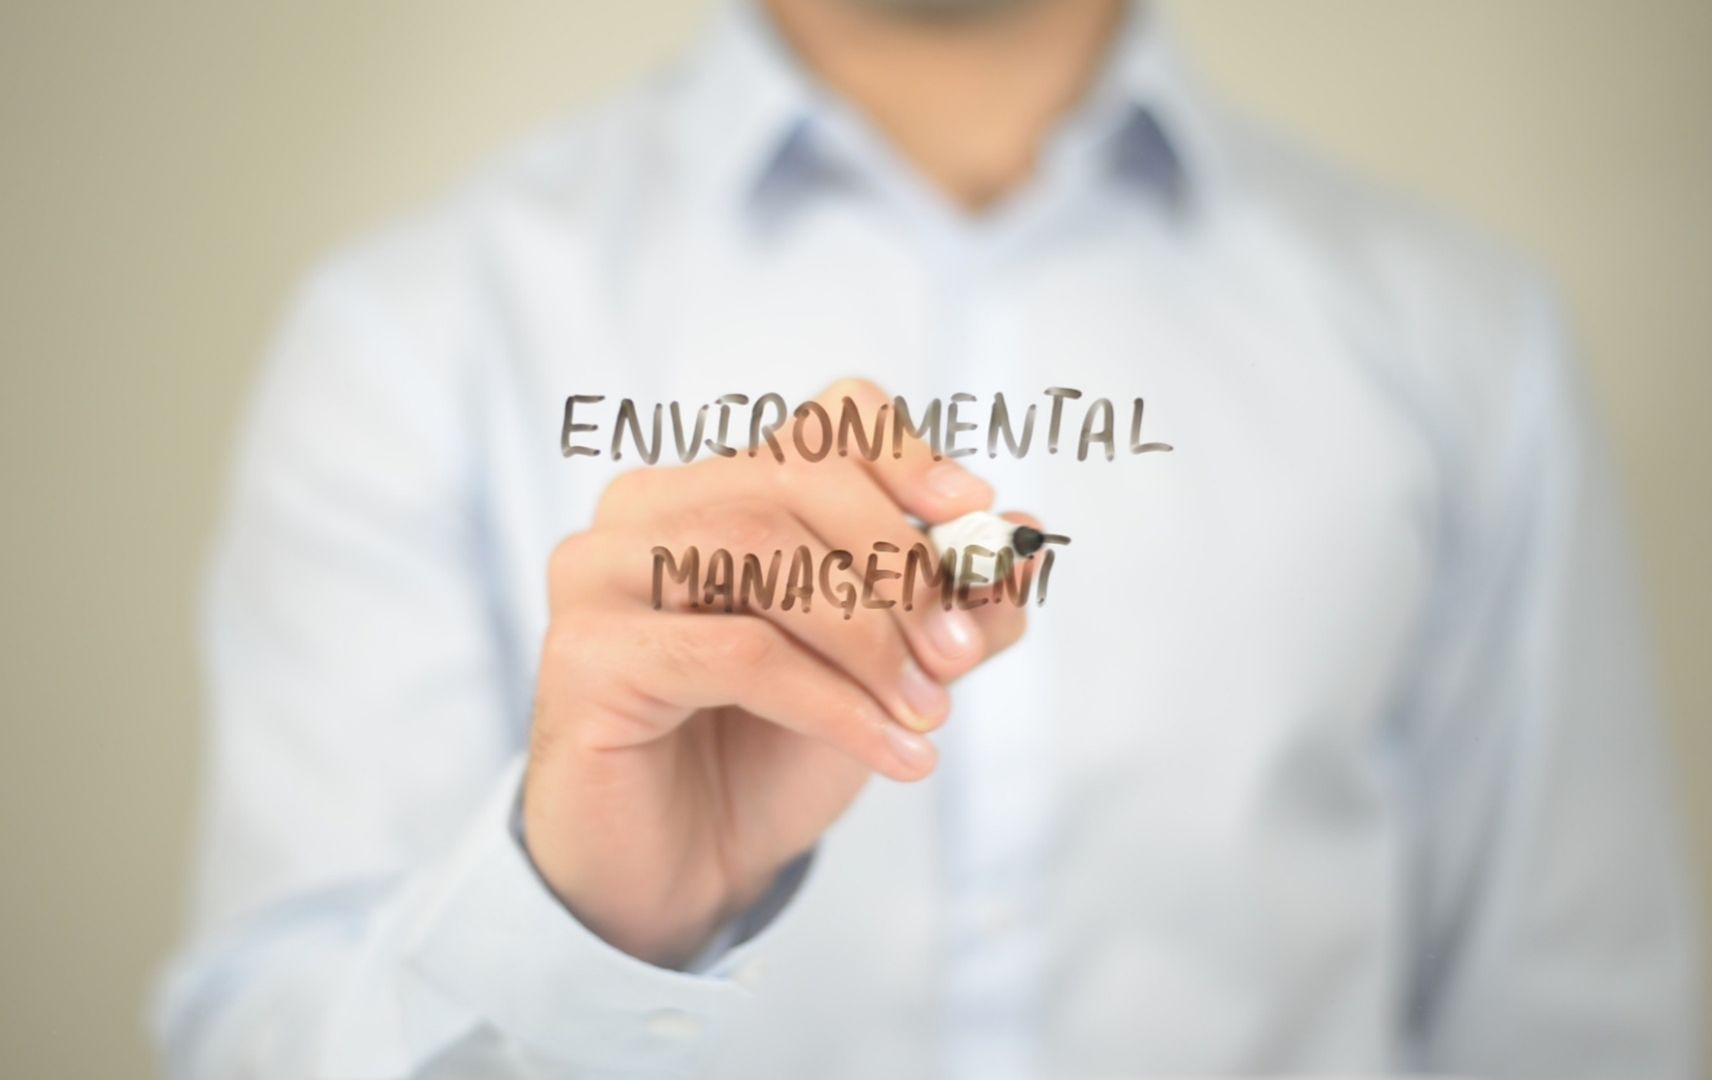 Umweltmanagement Environmental Management